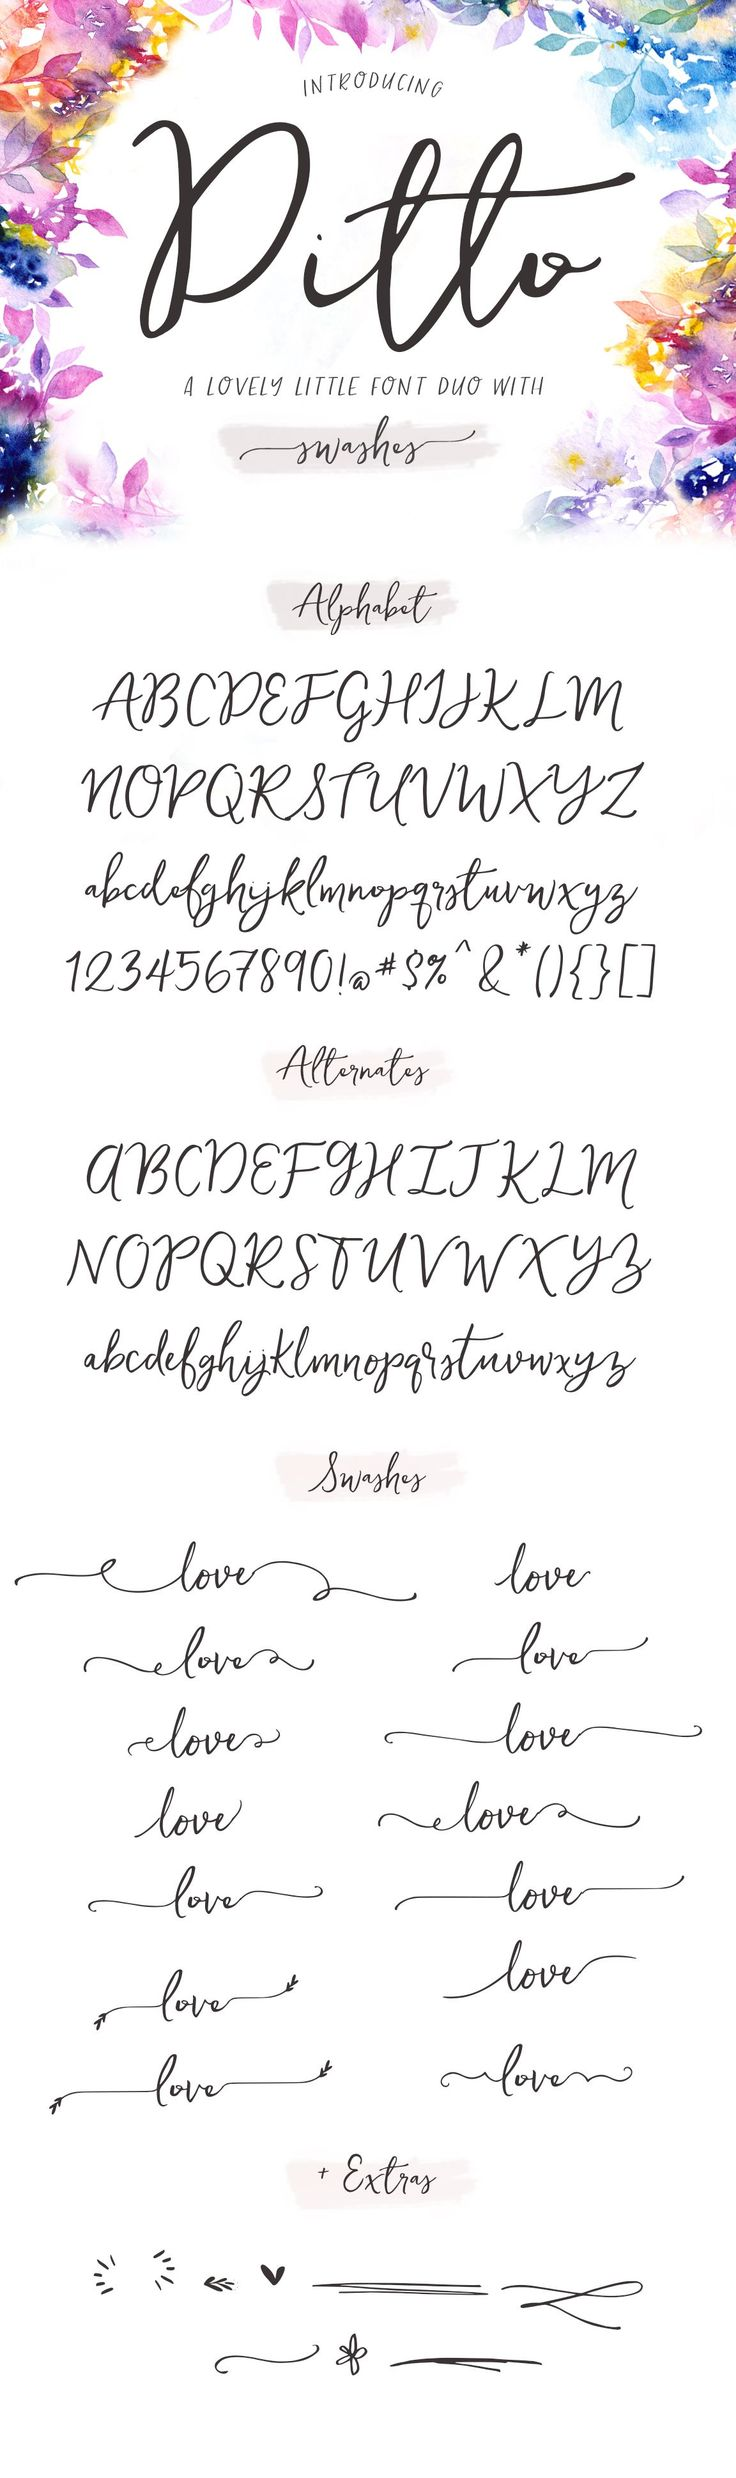 Meet Ditto Swashes Calligraphy Font. Perfect for DIY wedding invitations and graphic design projects. This font has a natural flow and swashes that connect seamlessly for a convincing calligraphy effect.